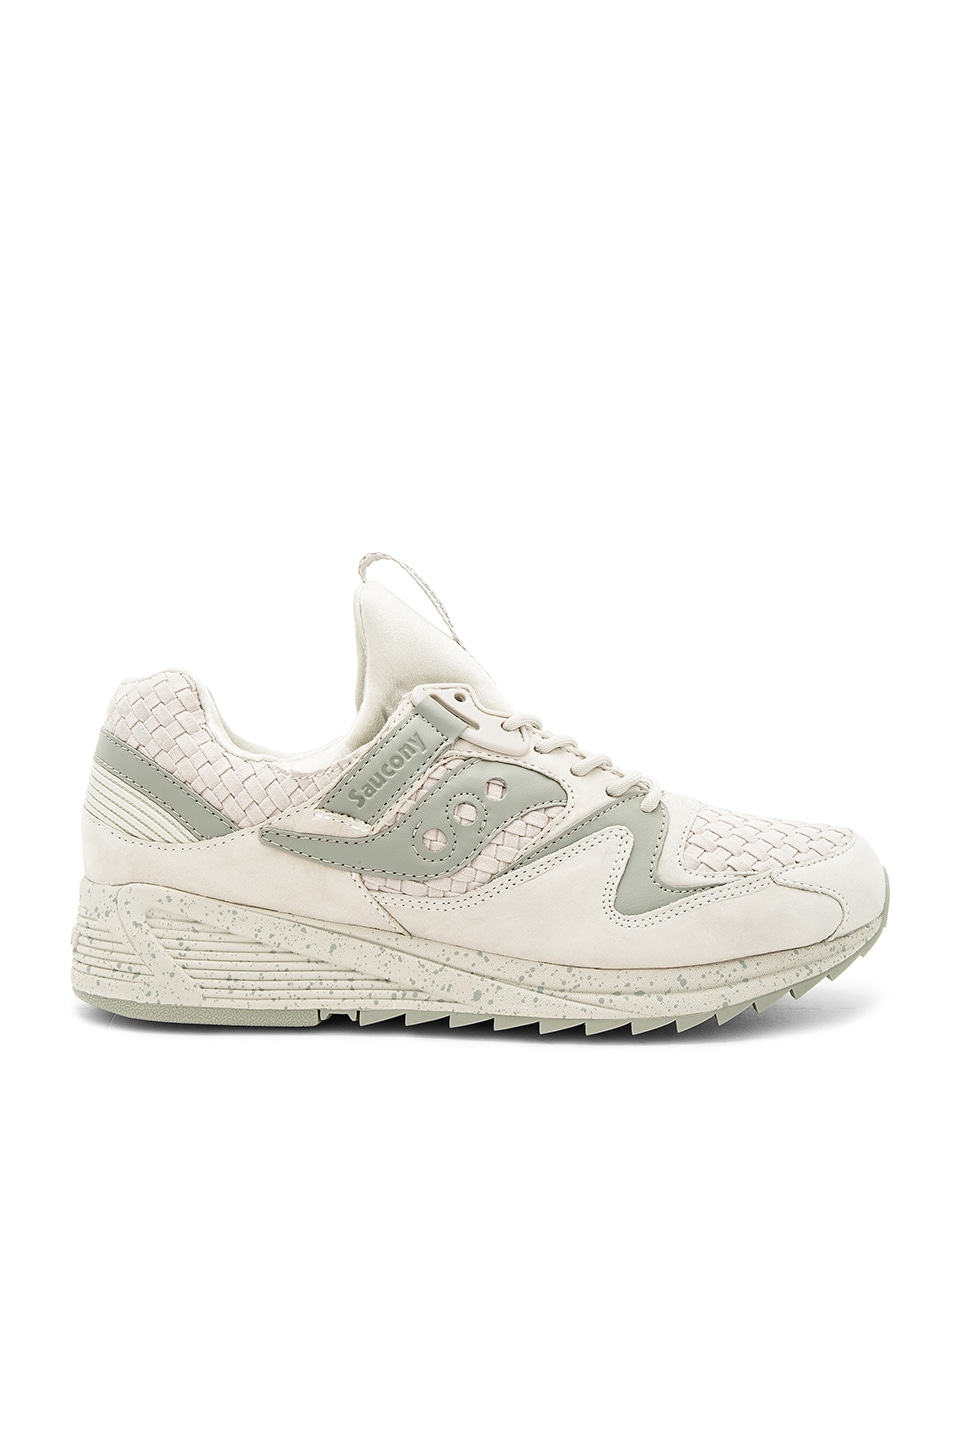 Grid 8500 Weave by Saucony